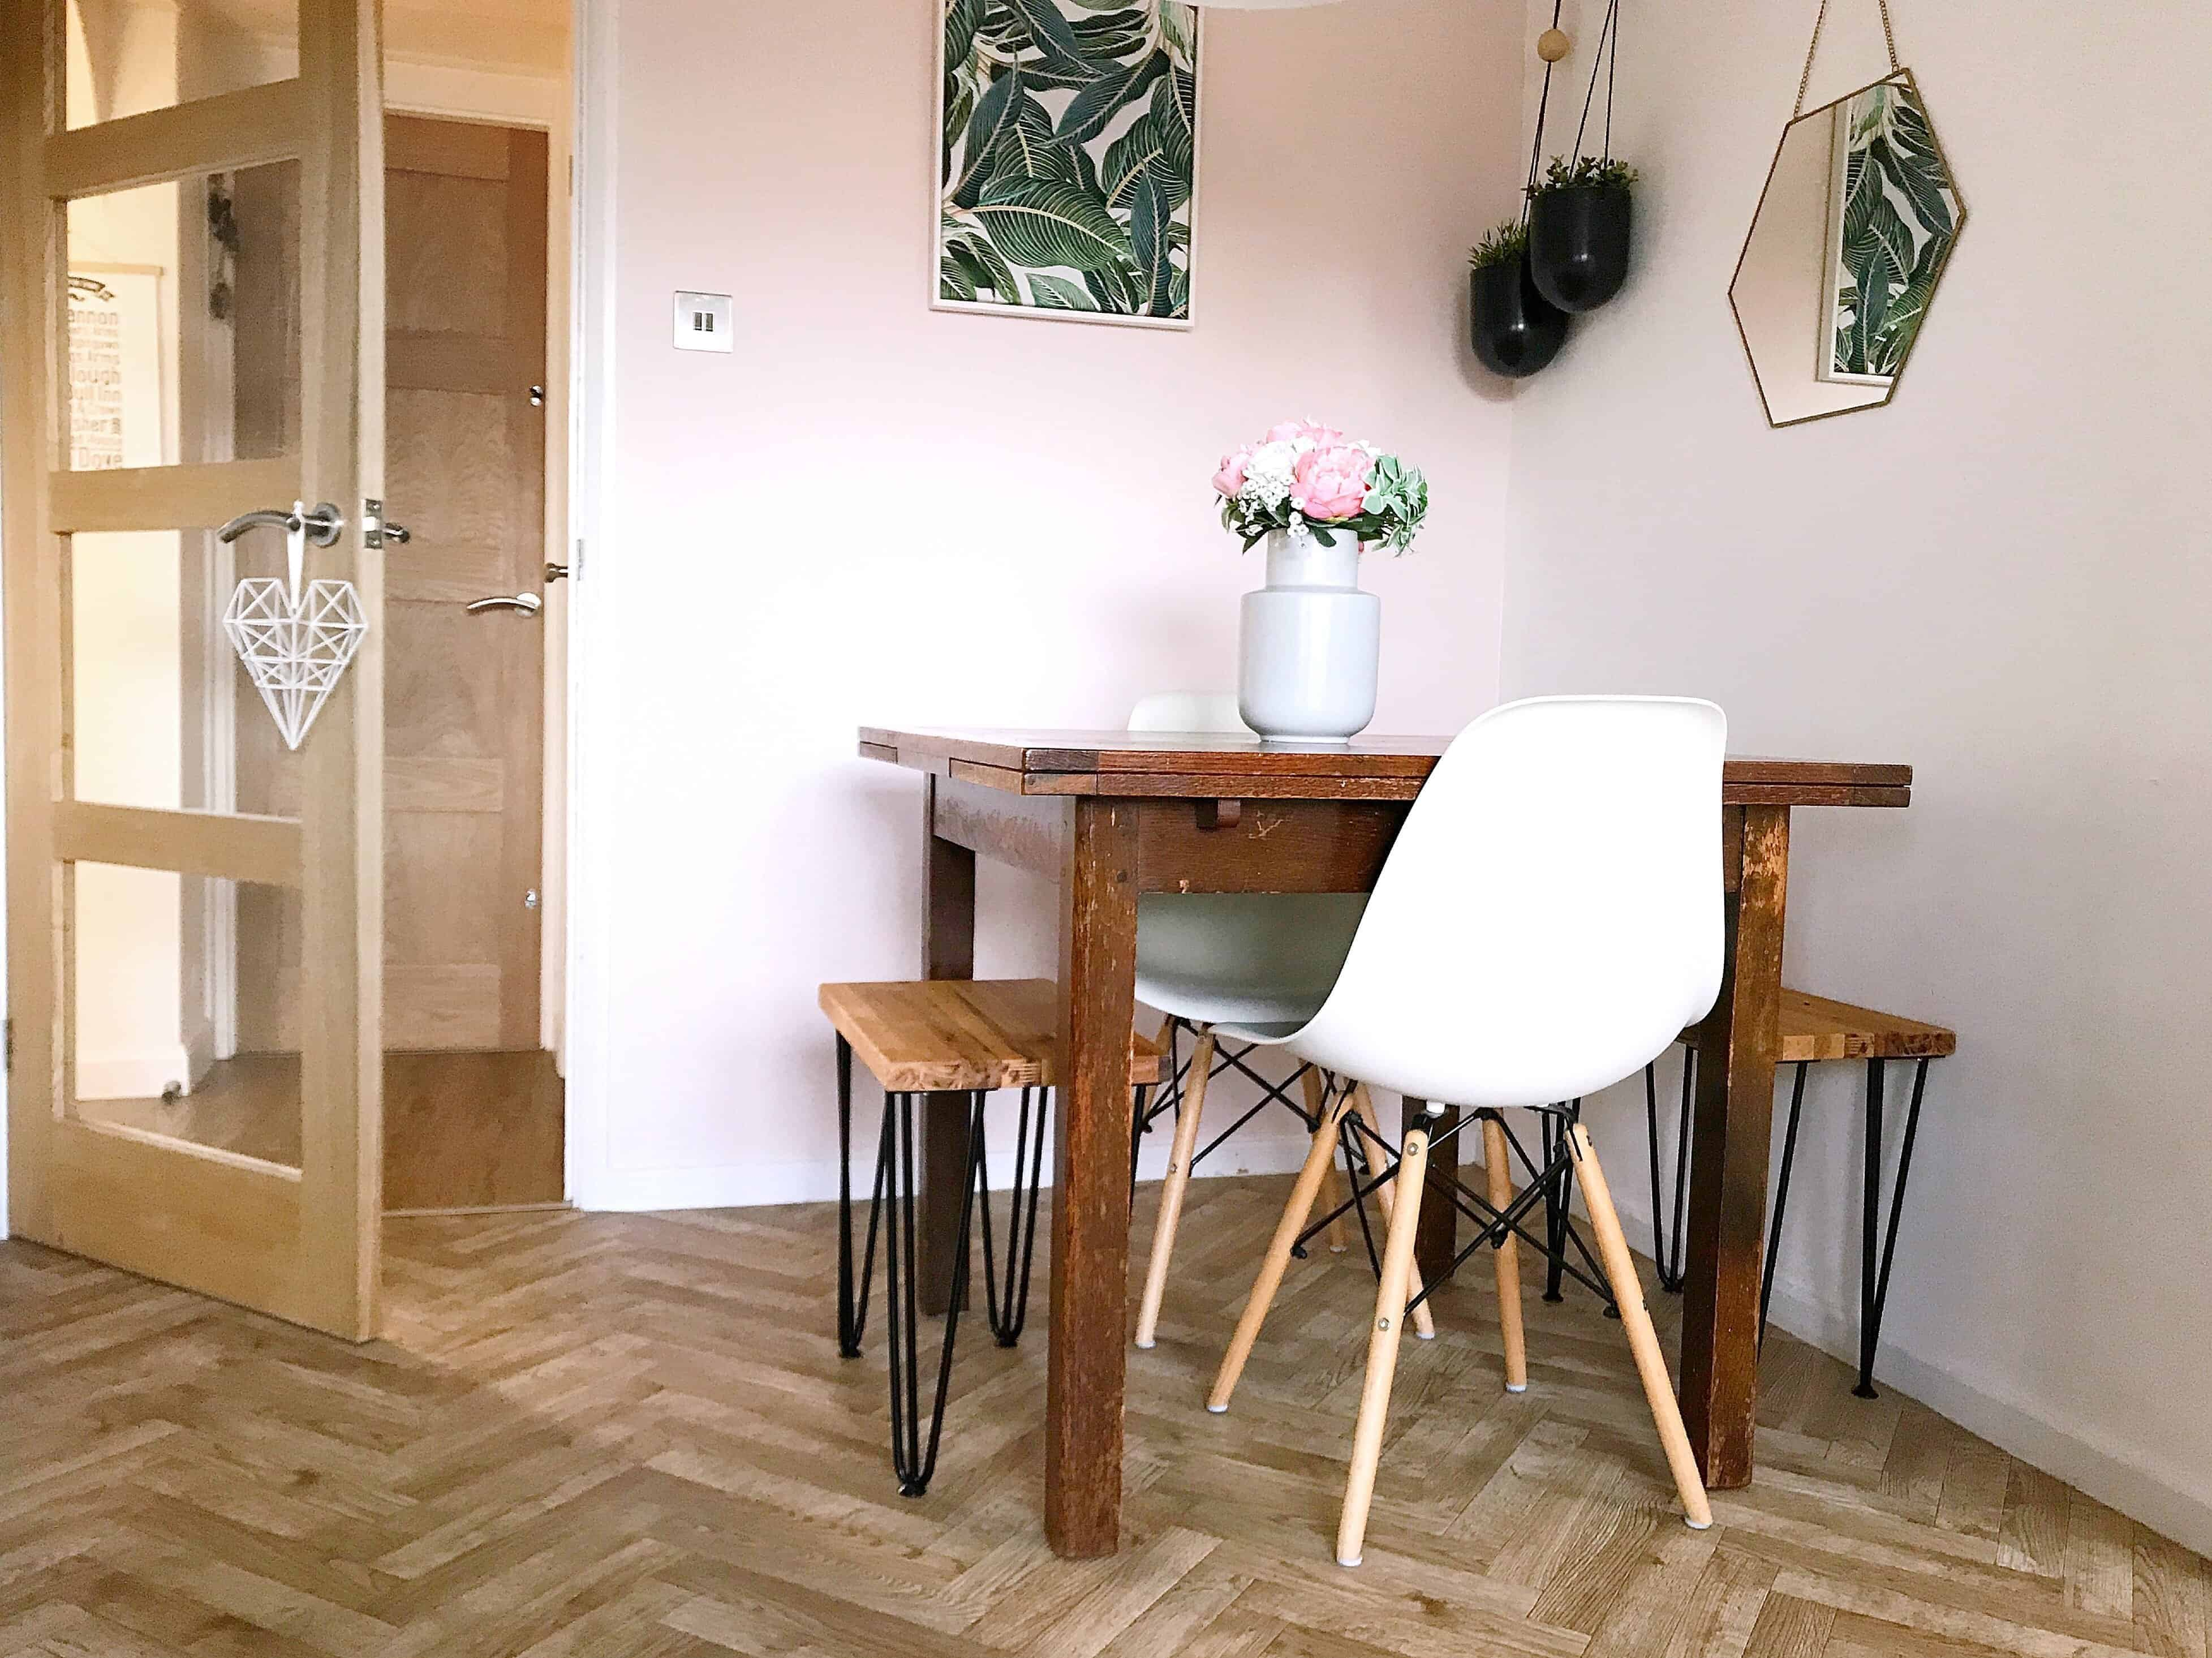 Dining room with herringbone floor, table with white chairs, stools and a hexagon mirror